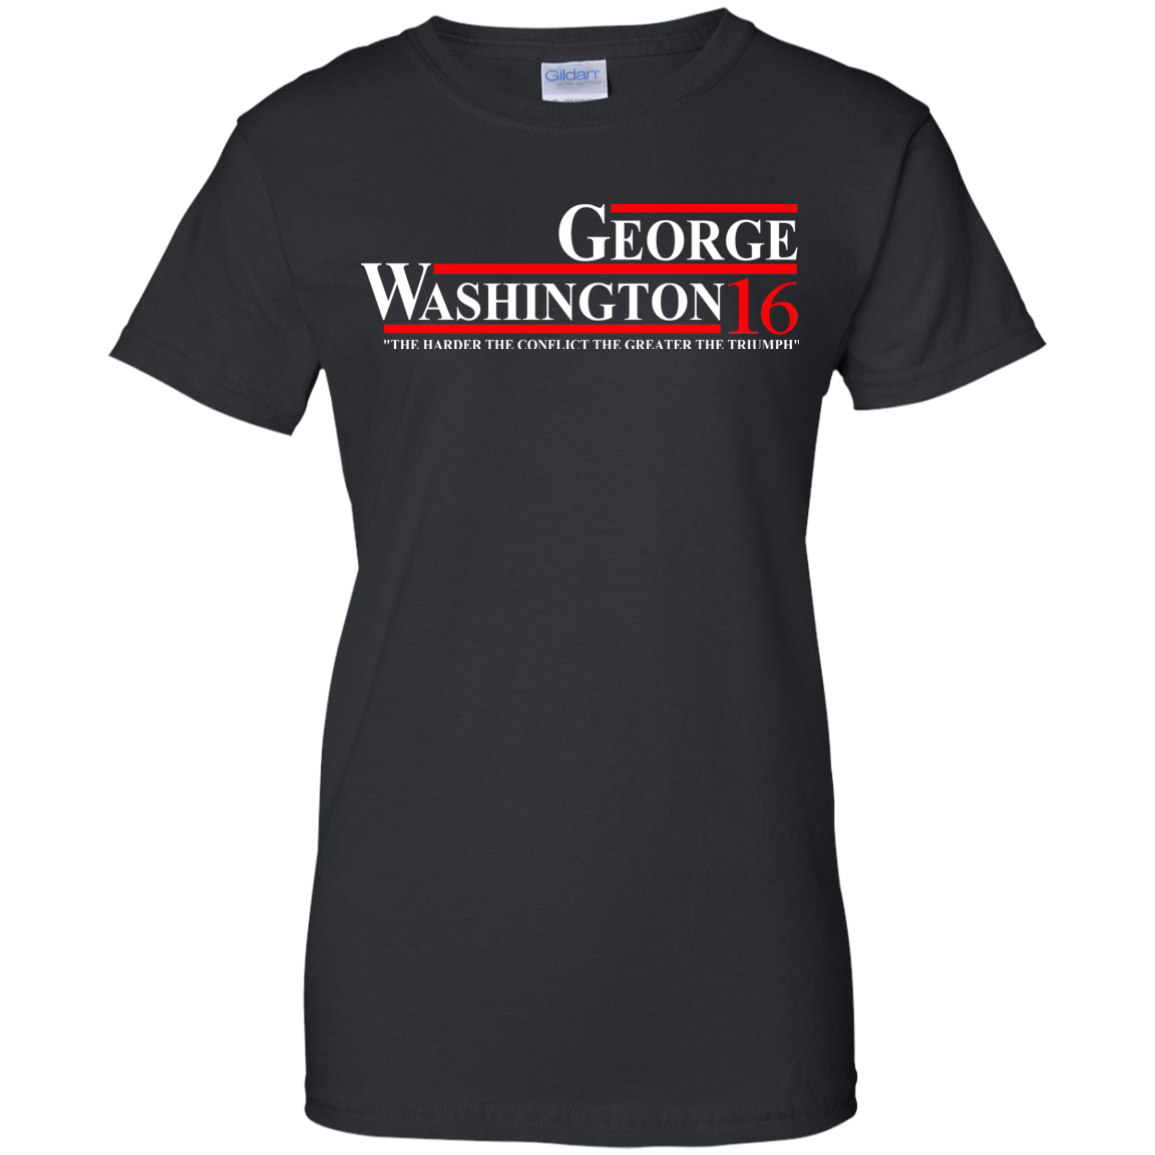 George Washington 16 Tee/Hoodie/Tank